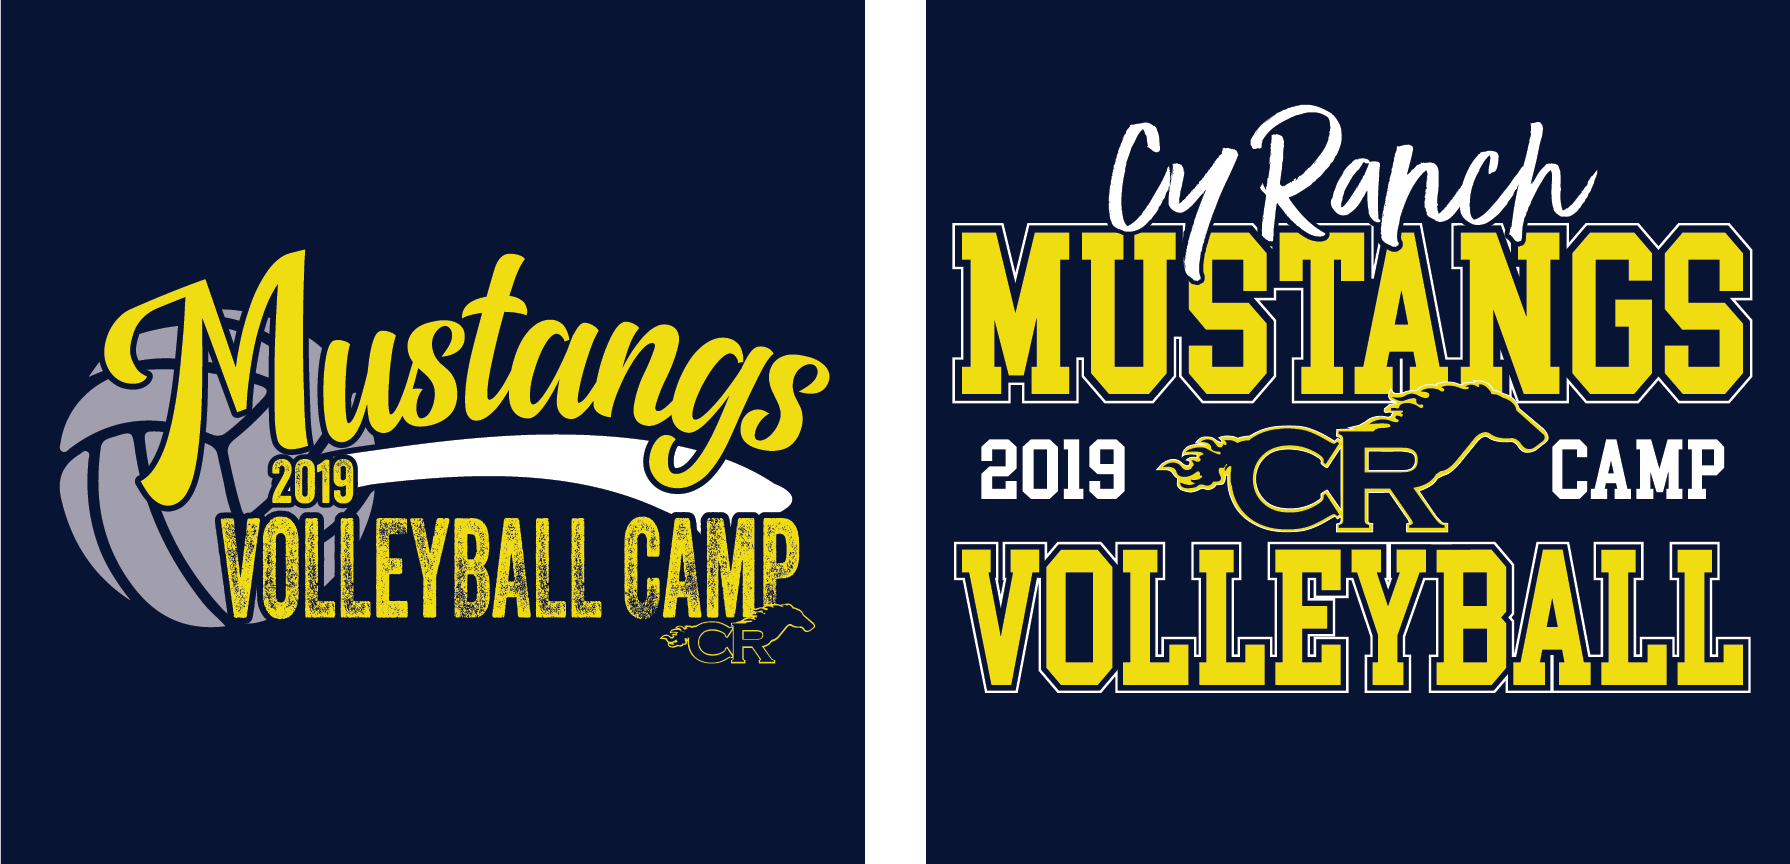 VOLLEYBALL CAMP SAMPLES